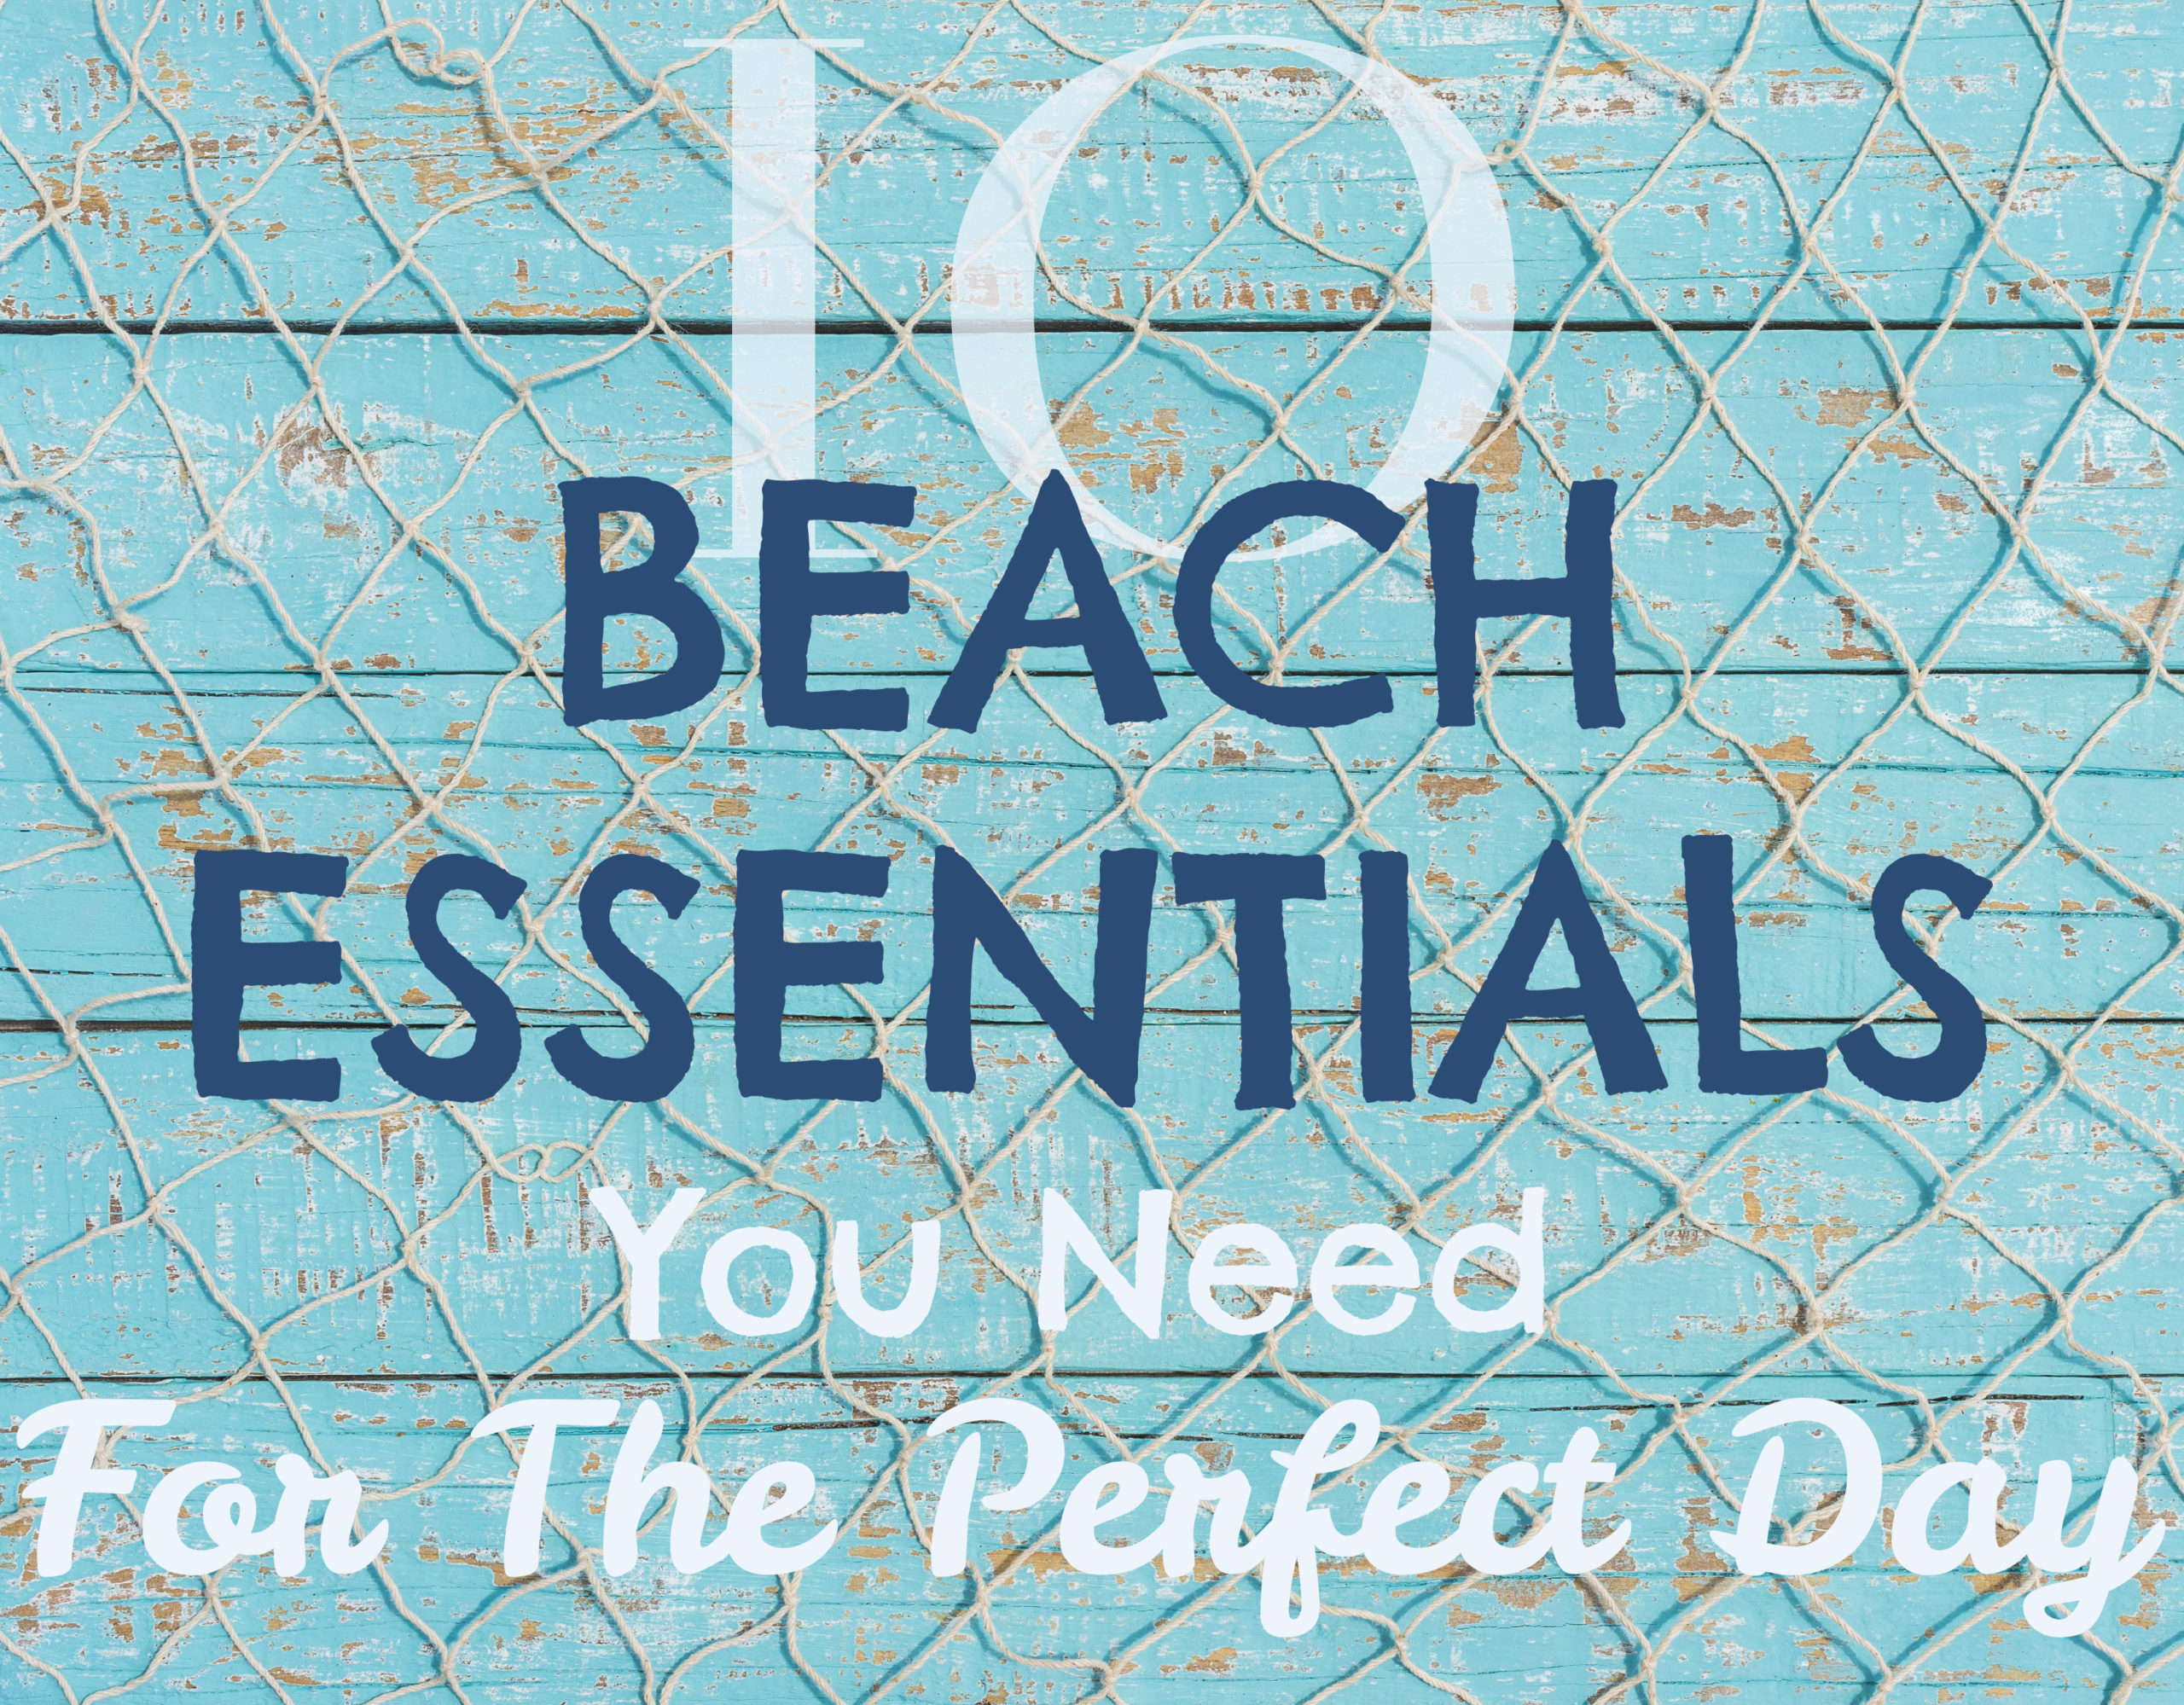 beach essentials list